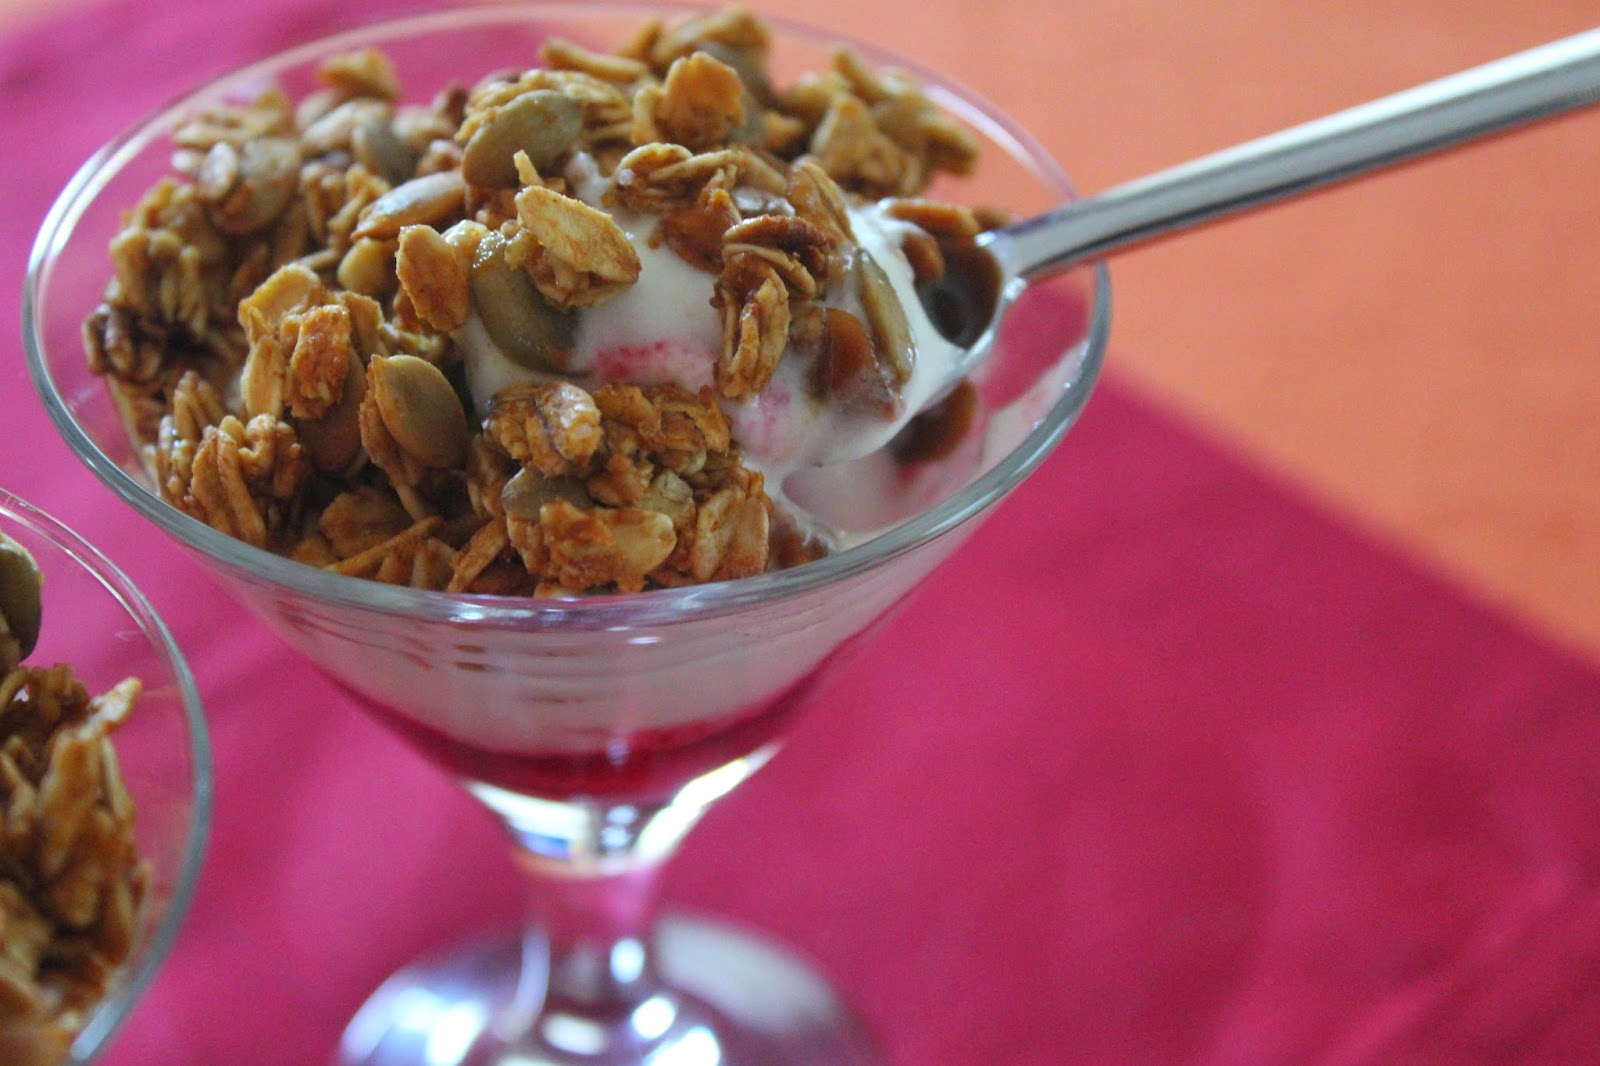 Pumpkin-cranberry yogurt parfaits from Delicious Dishings